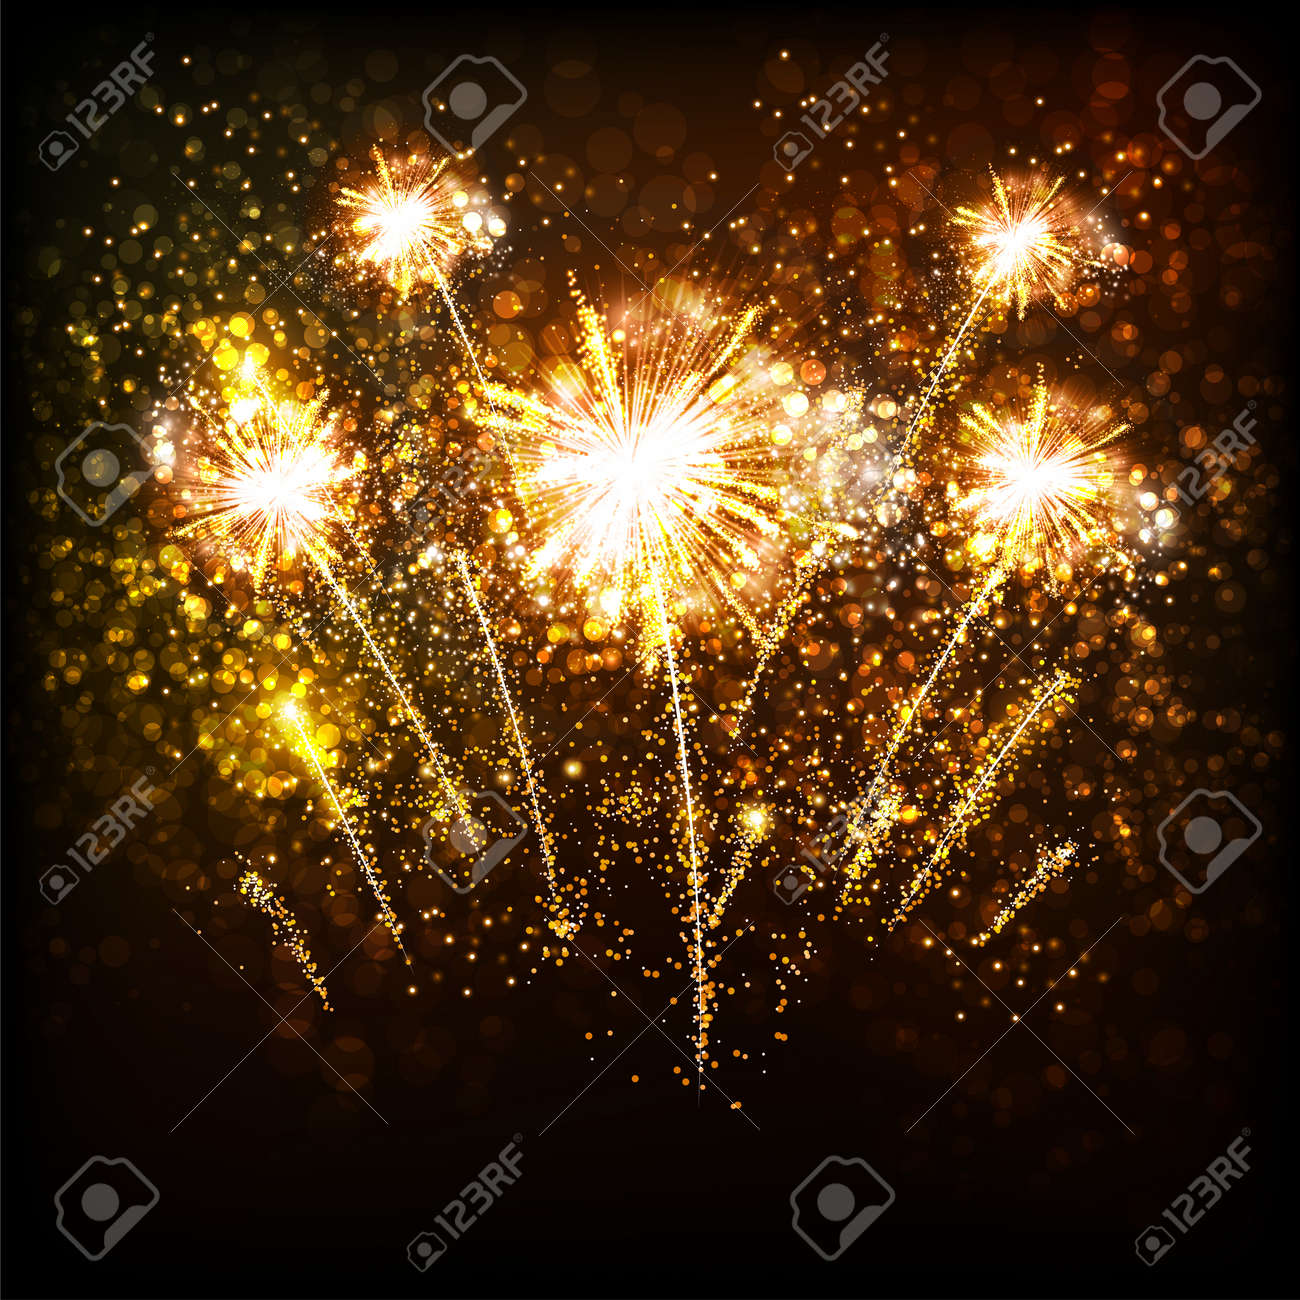 happy new year with golden fireworks template design royalty free